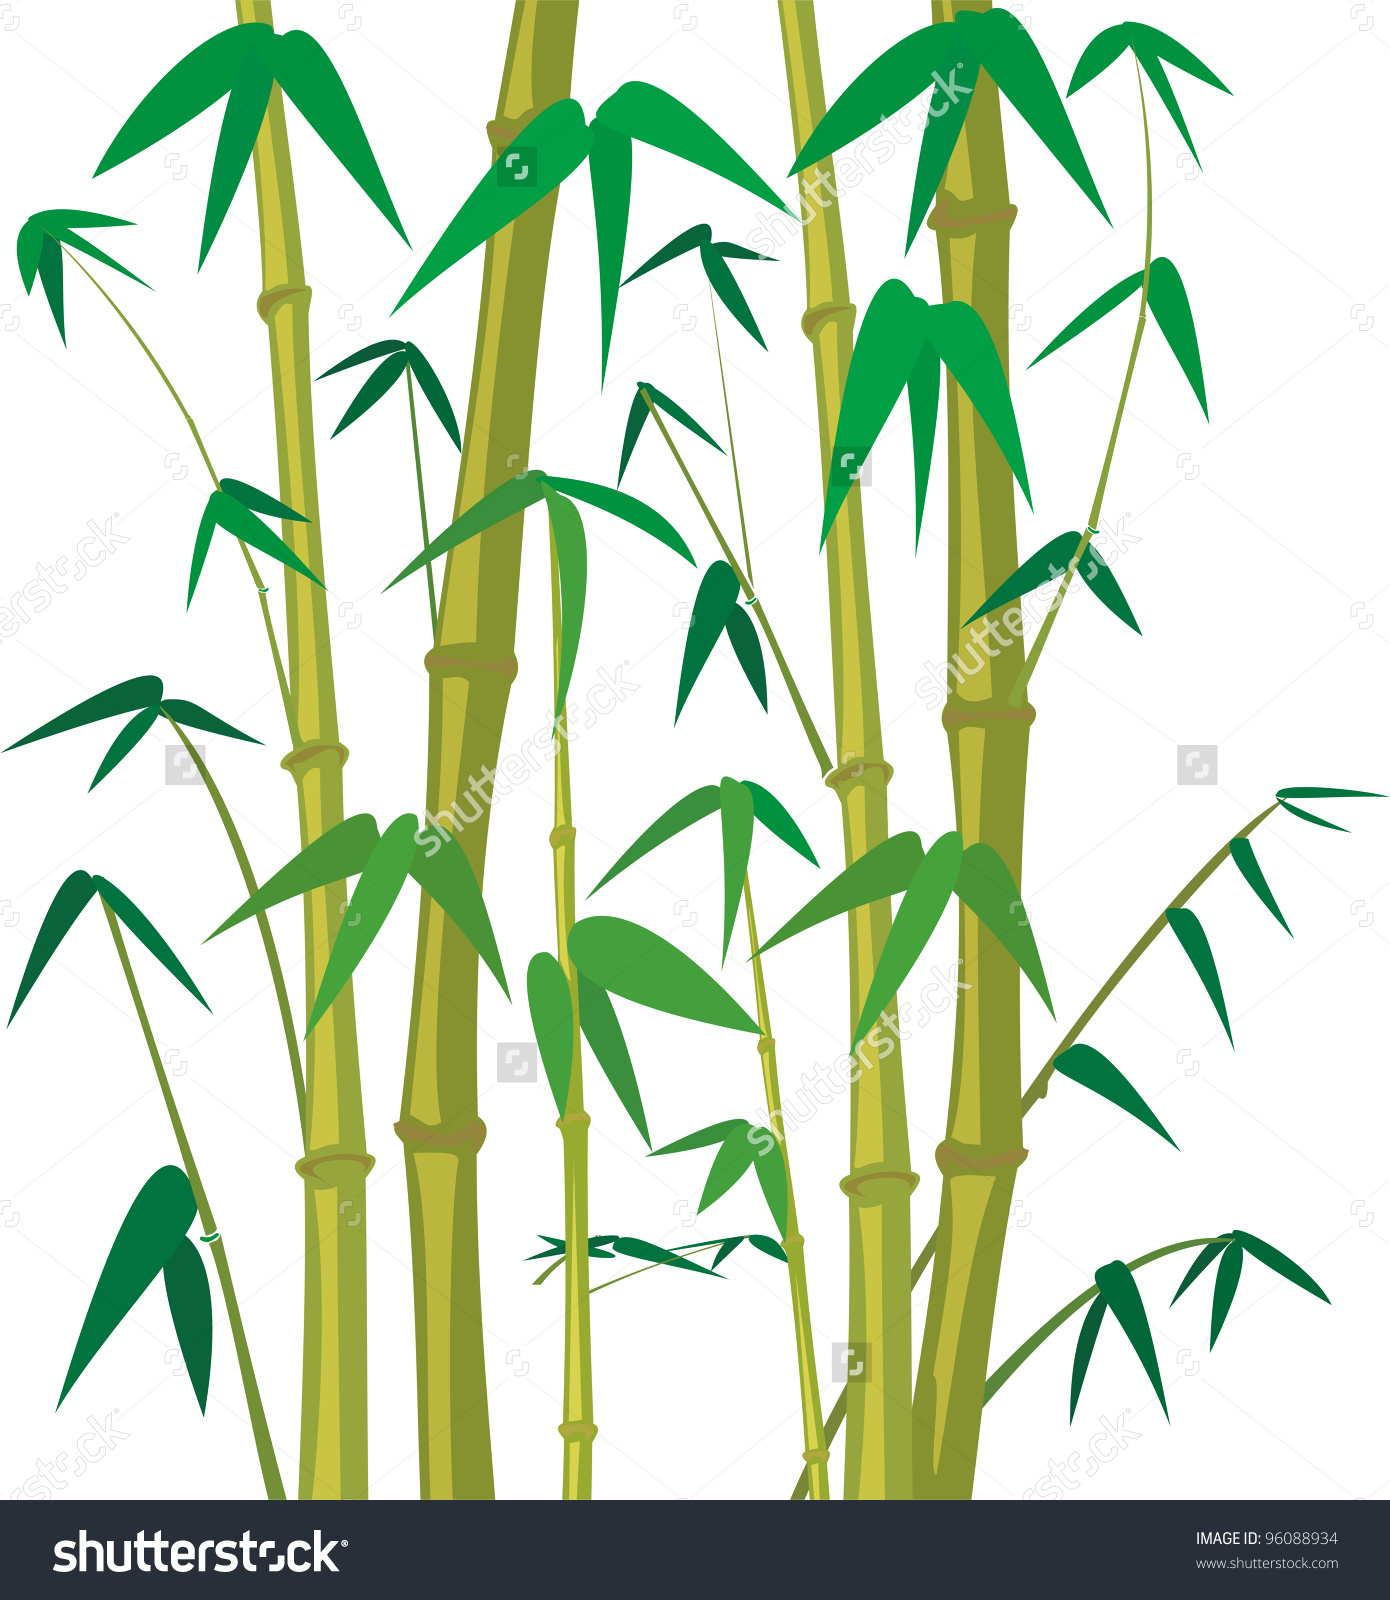 Bamboo Tree Stock Vector 96088934.